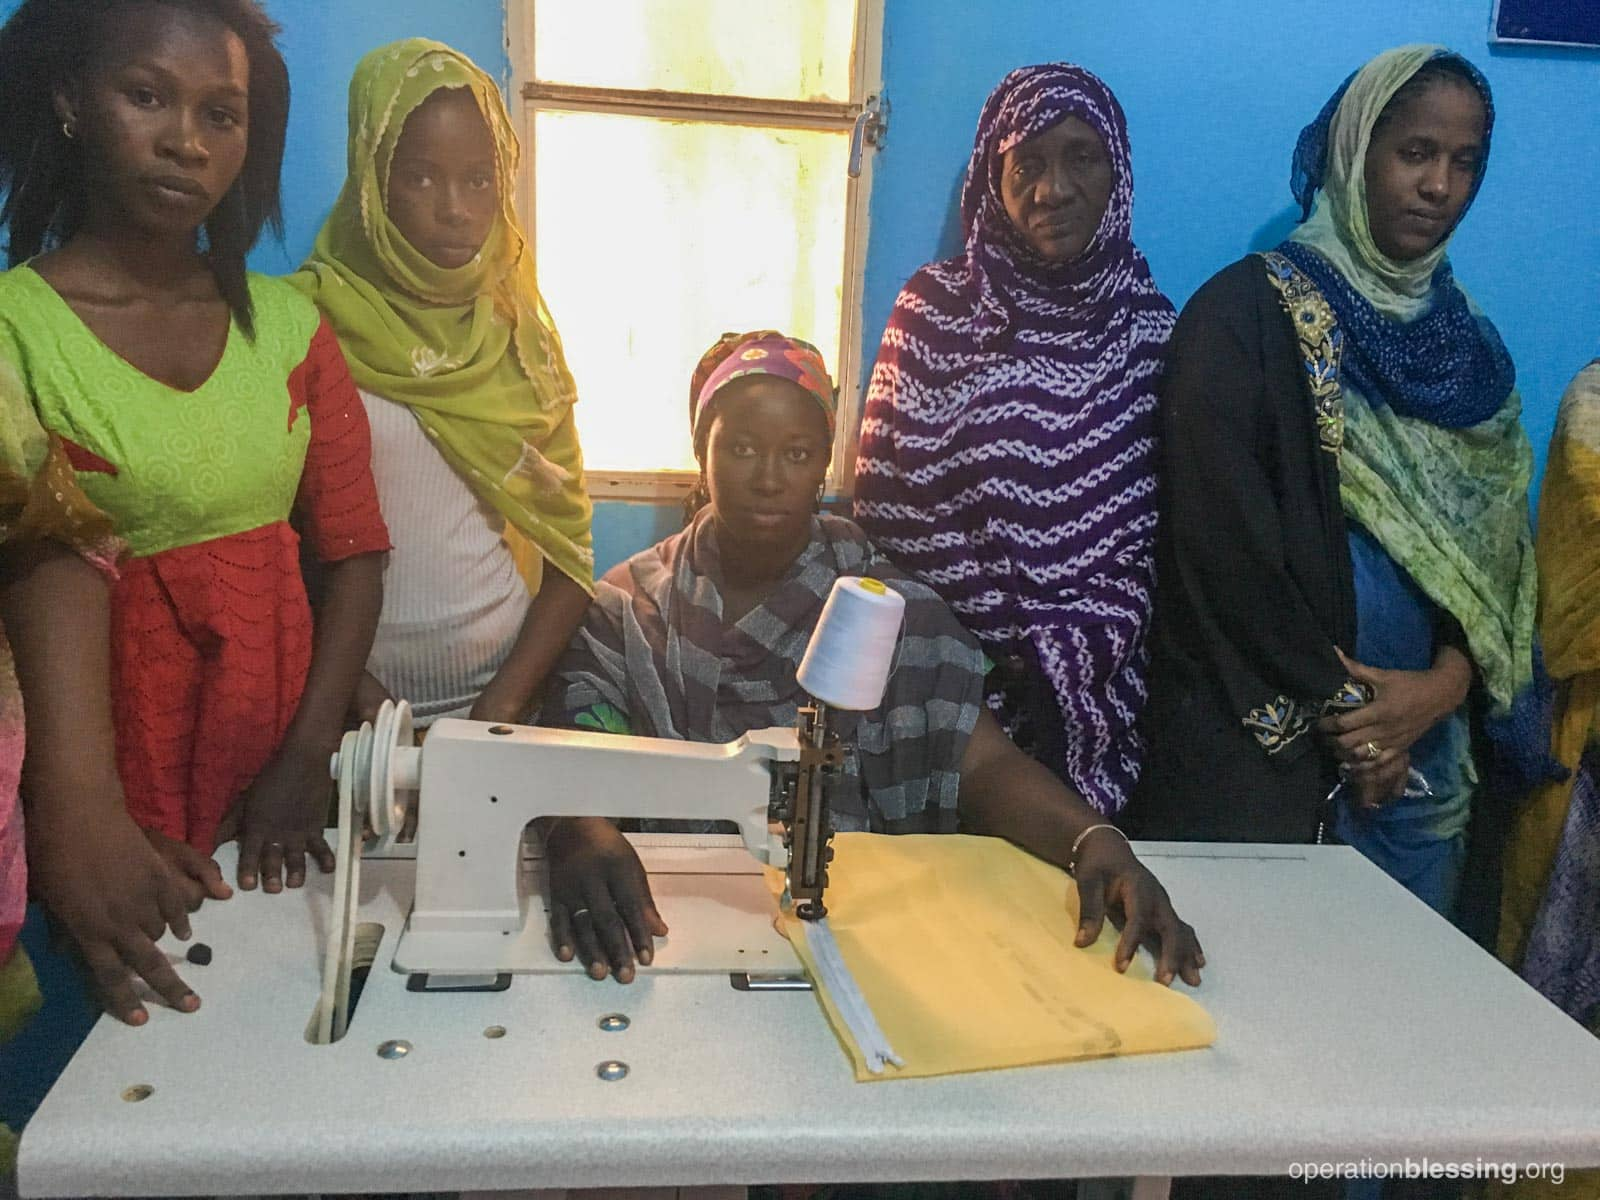 Women in Mauritania gather around the sewing machine for their lesson.